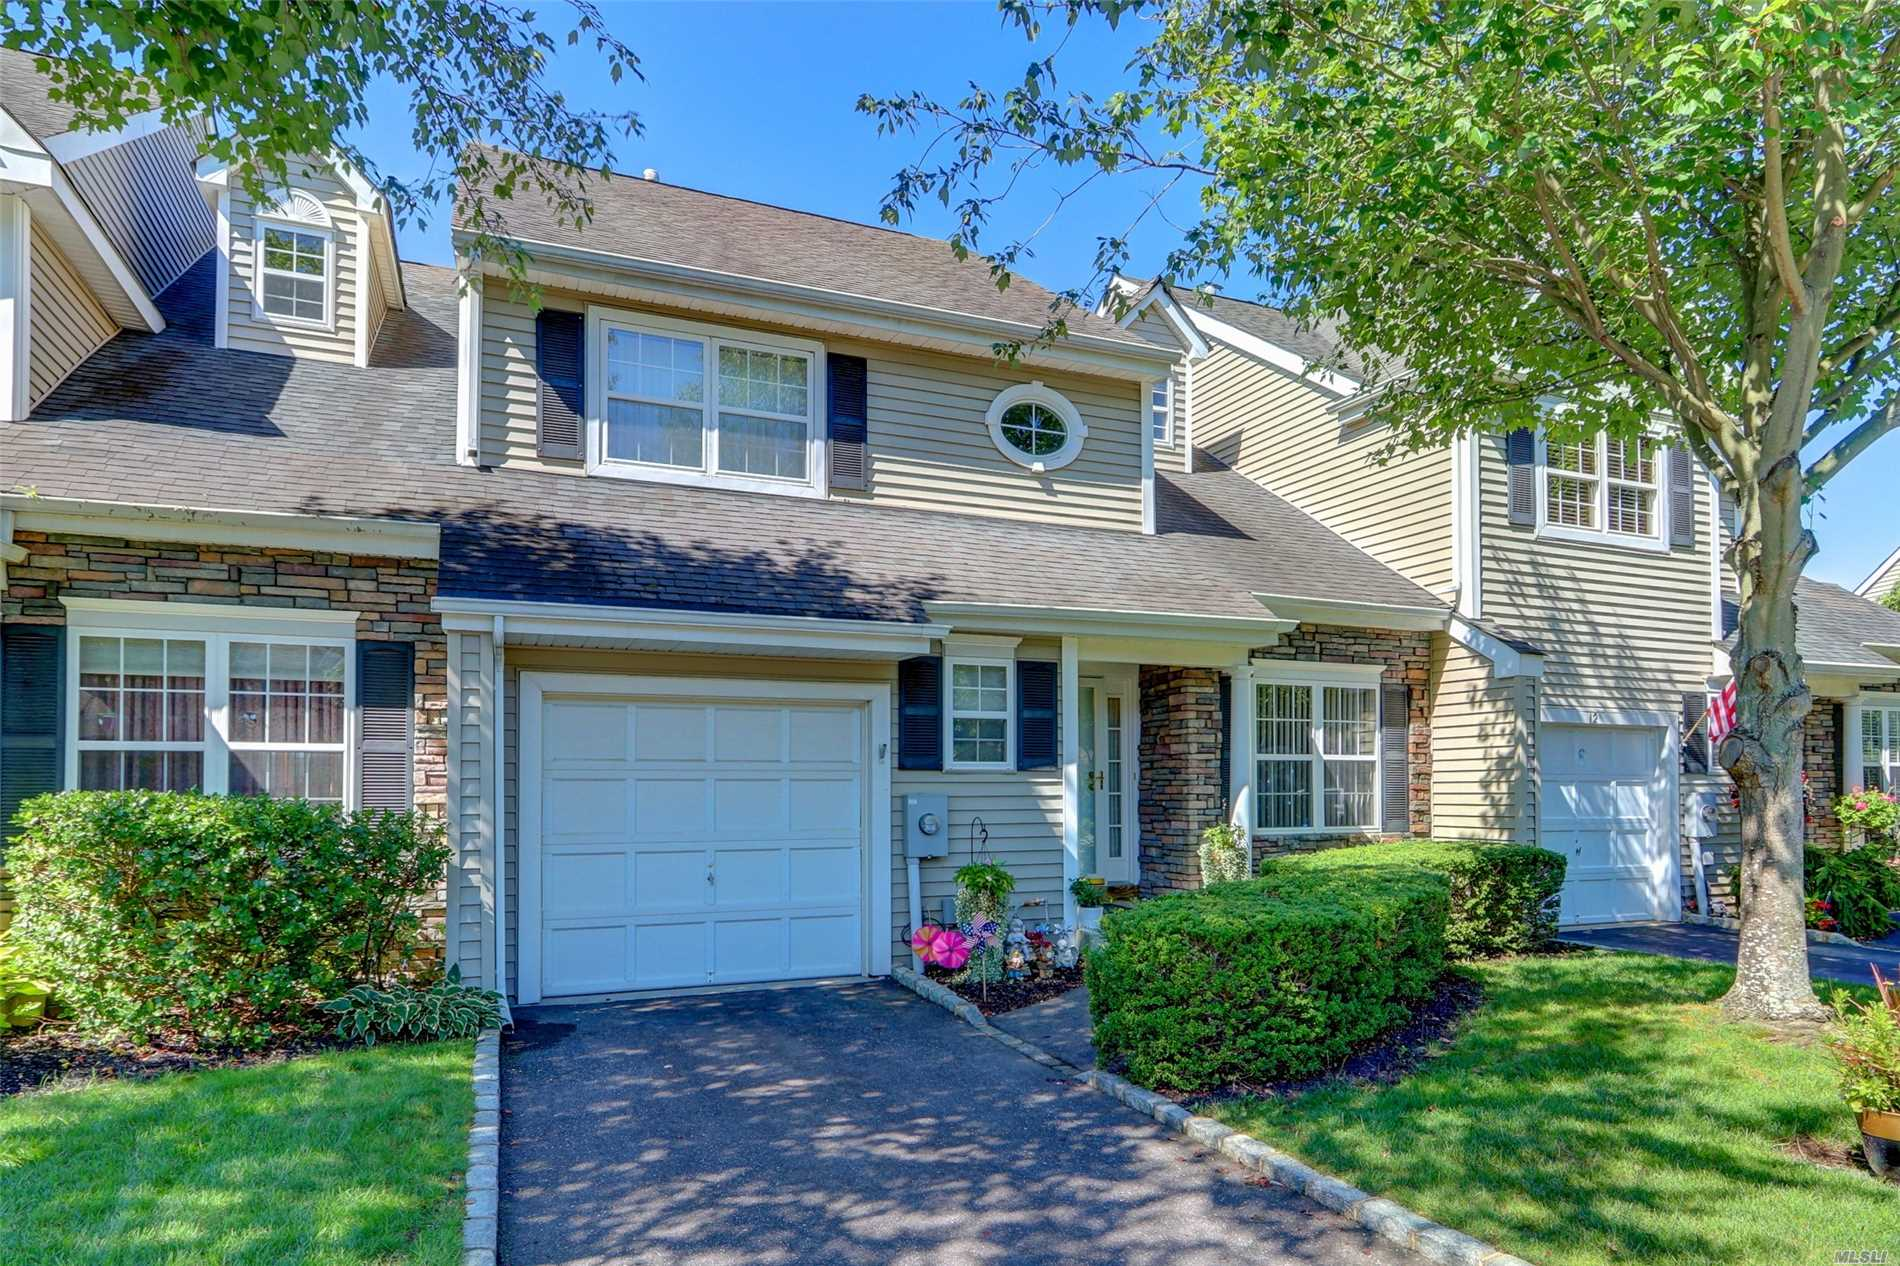 Beautiful Concord Model, Located In The Gated Community Of Windcrest. This Townhome Offers Main Floor Master Bedroom W/Full Bath, Eik, Dr, Lr W/Fp & Sliders To Rear Deck W/Spectacular Views Of The Pond, Laundry Room, ? Bath. 2 Add'l Brs On 2nd Floor, Office/Playroom, Loft Area, Full Family Bath, Special Features Include Prime Location, Hardwd Flrs, Cvac, 2 Zone Cac, Alarm, Full Basement With Walk Out Entrance To Rear Patio, Garage And More! Smithtown Sd#1, Must See!!